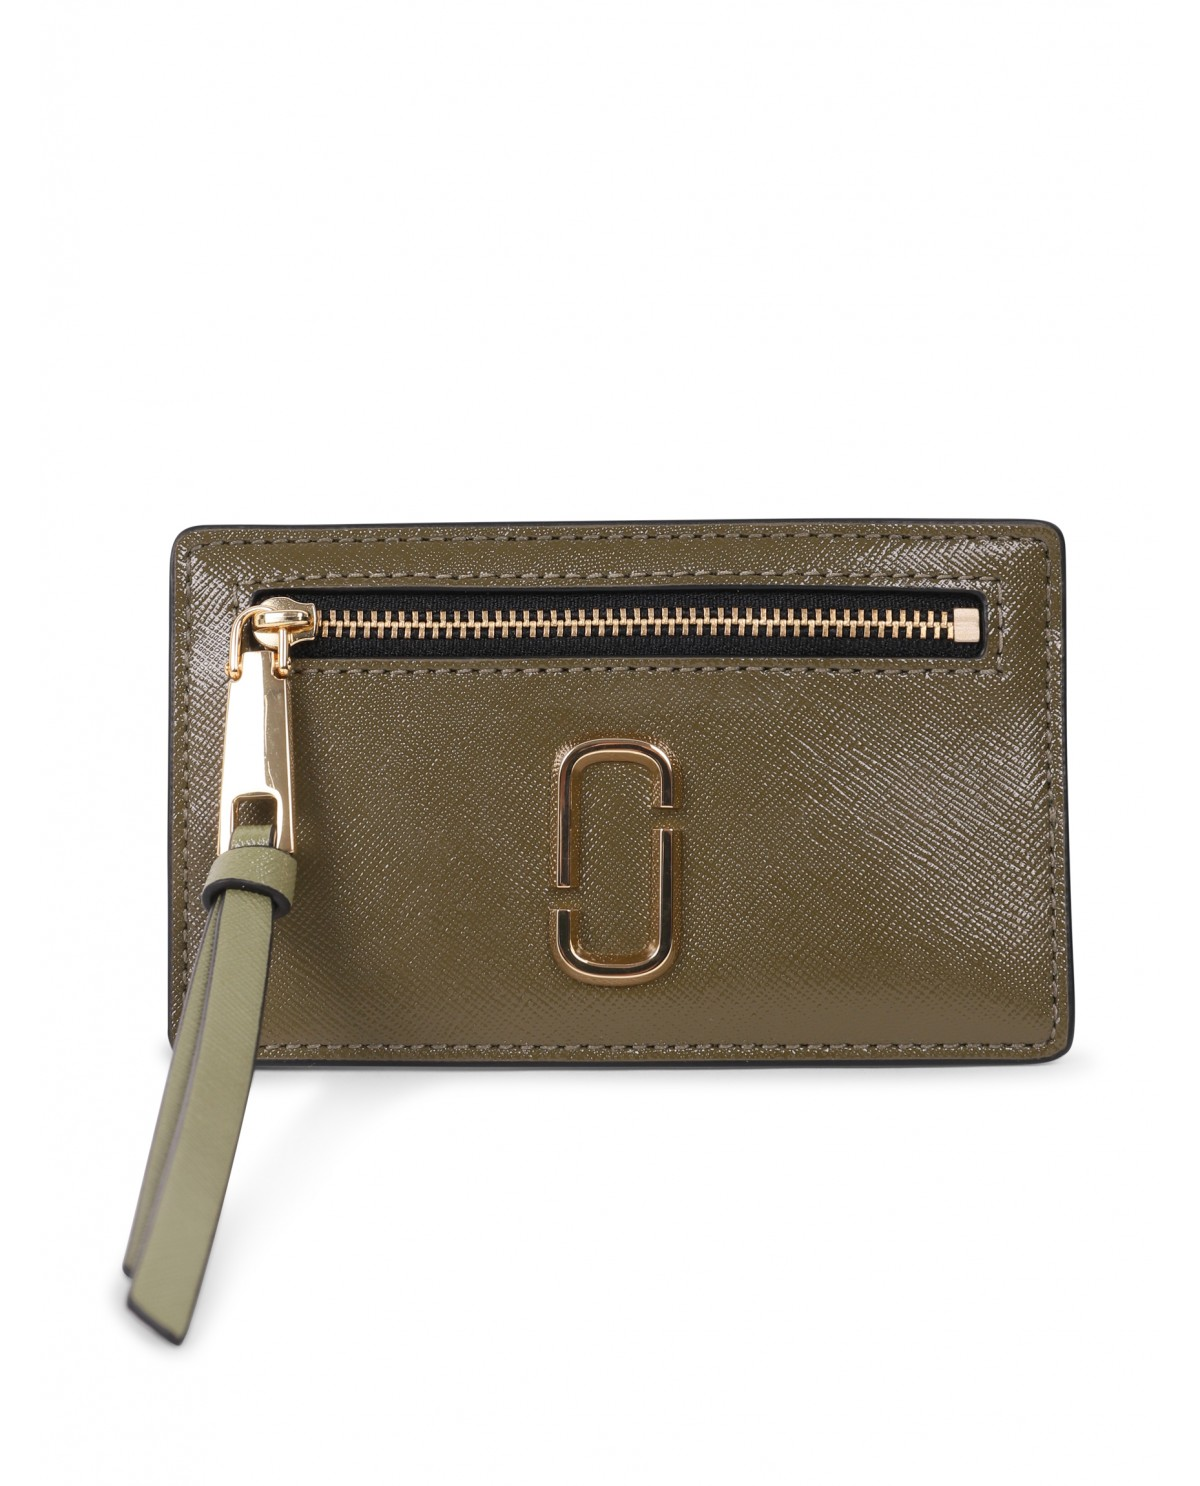 Marc Jacobs green Snapshot card holder